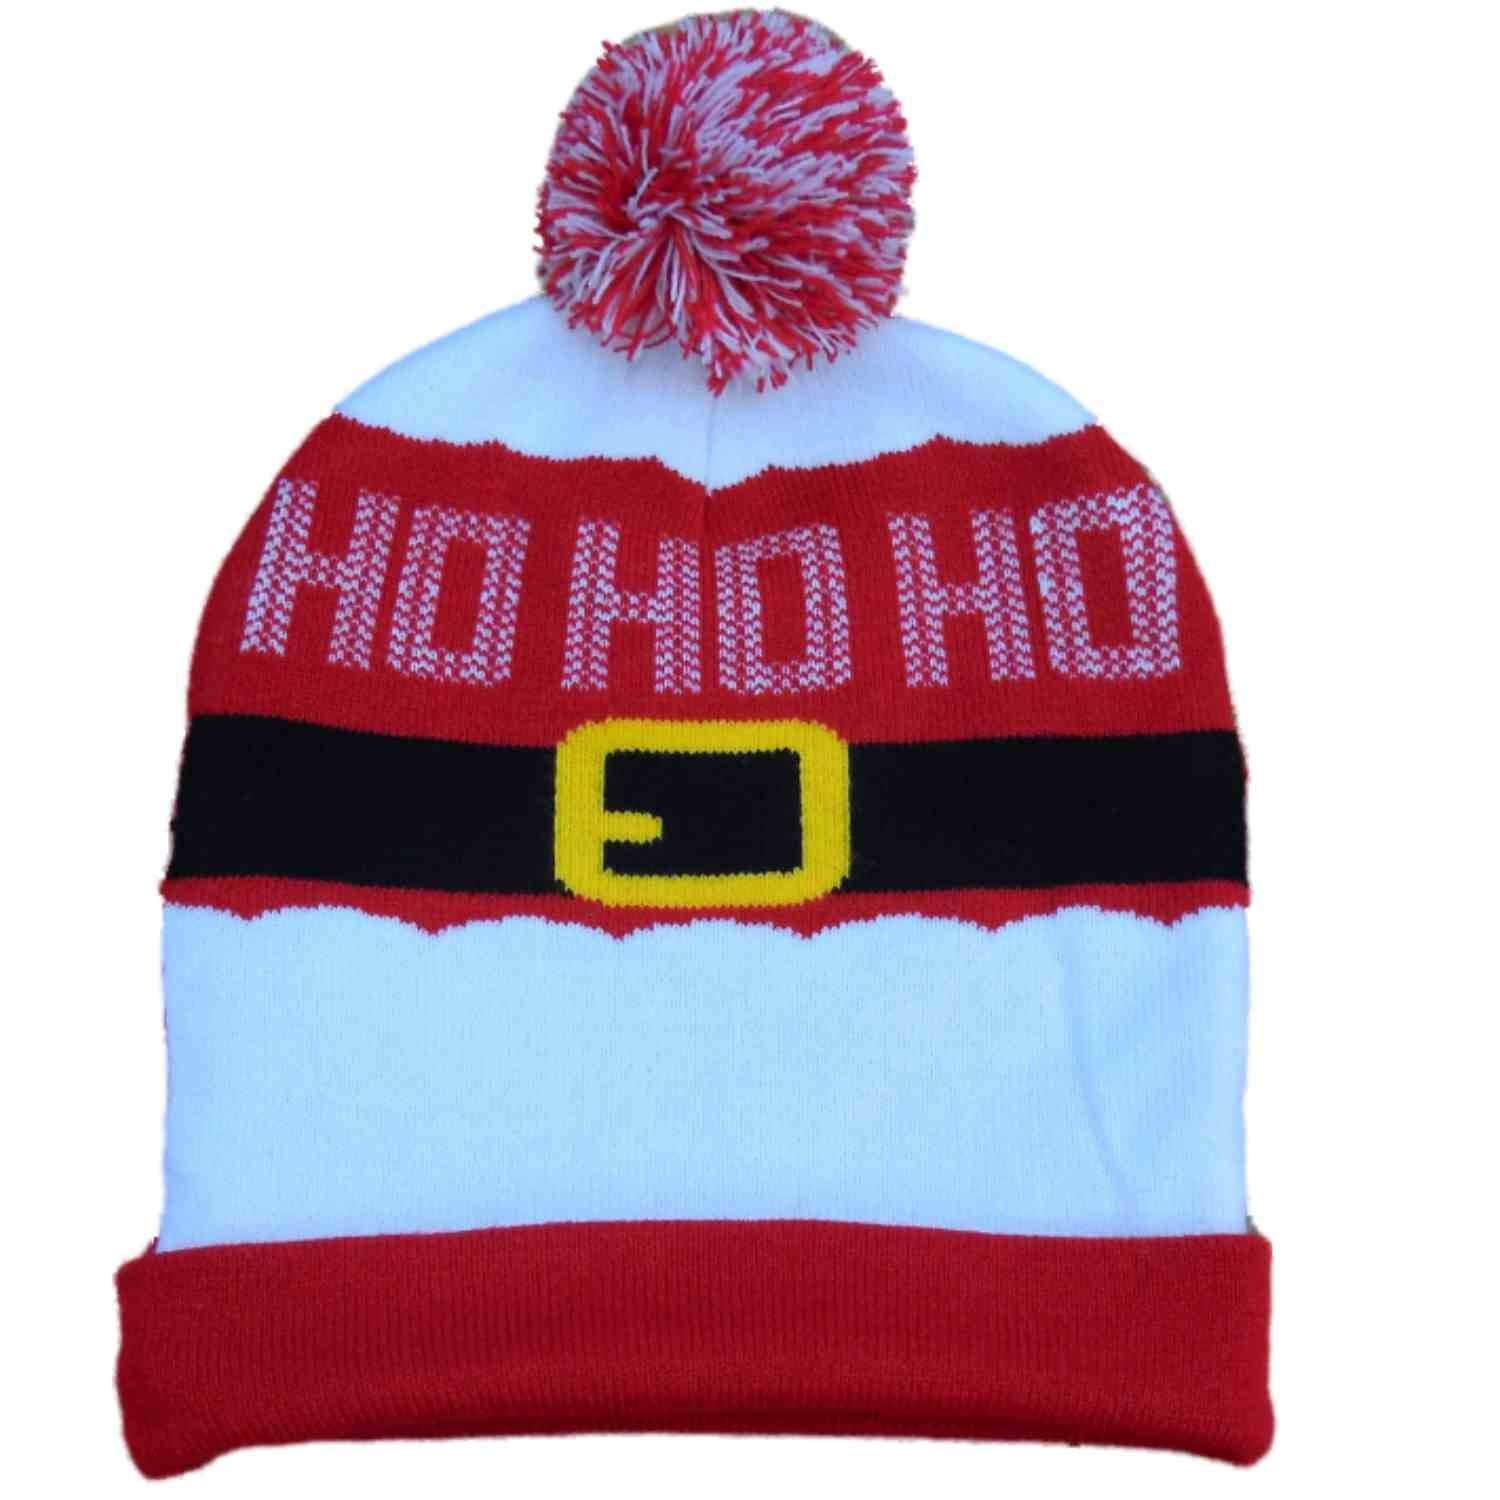 Get Quotations · Men s Christmas Santa Ho Ho Ho Red Beanie Stocking Cap  Winter Hat 6e32e4017c6f